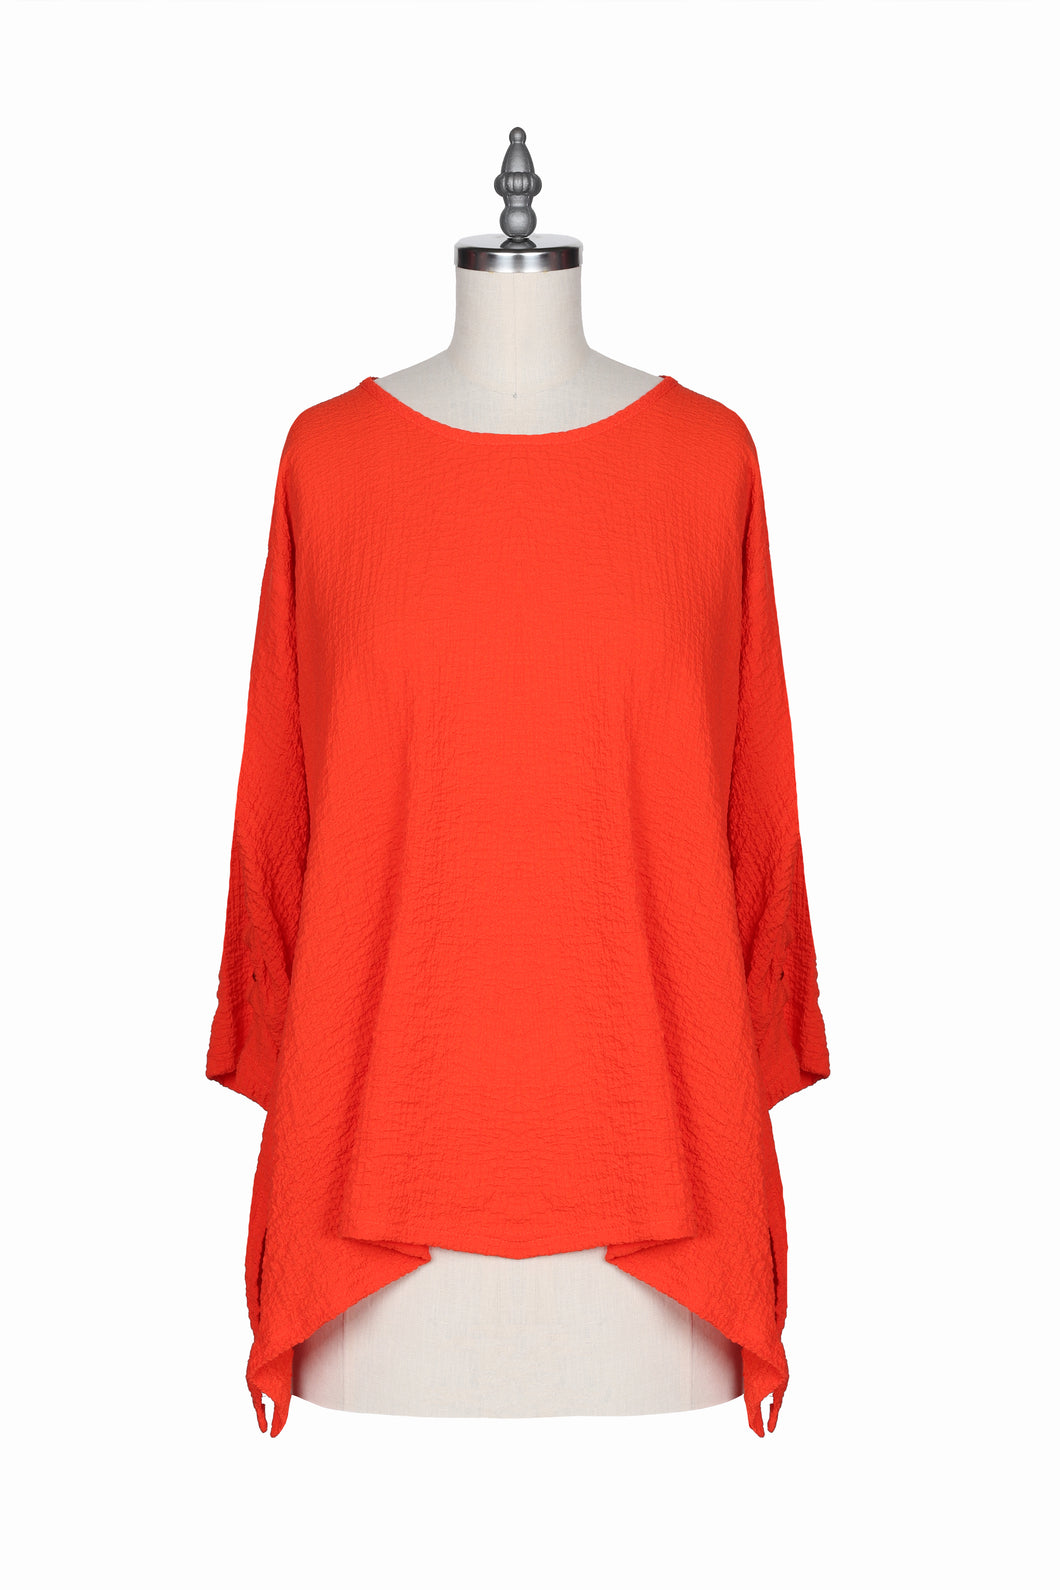 Yushi Orange Tunic with Black Buttons on the Sleeve